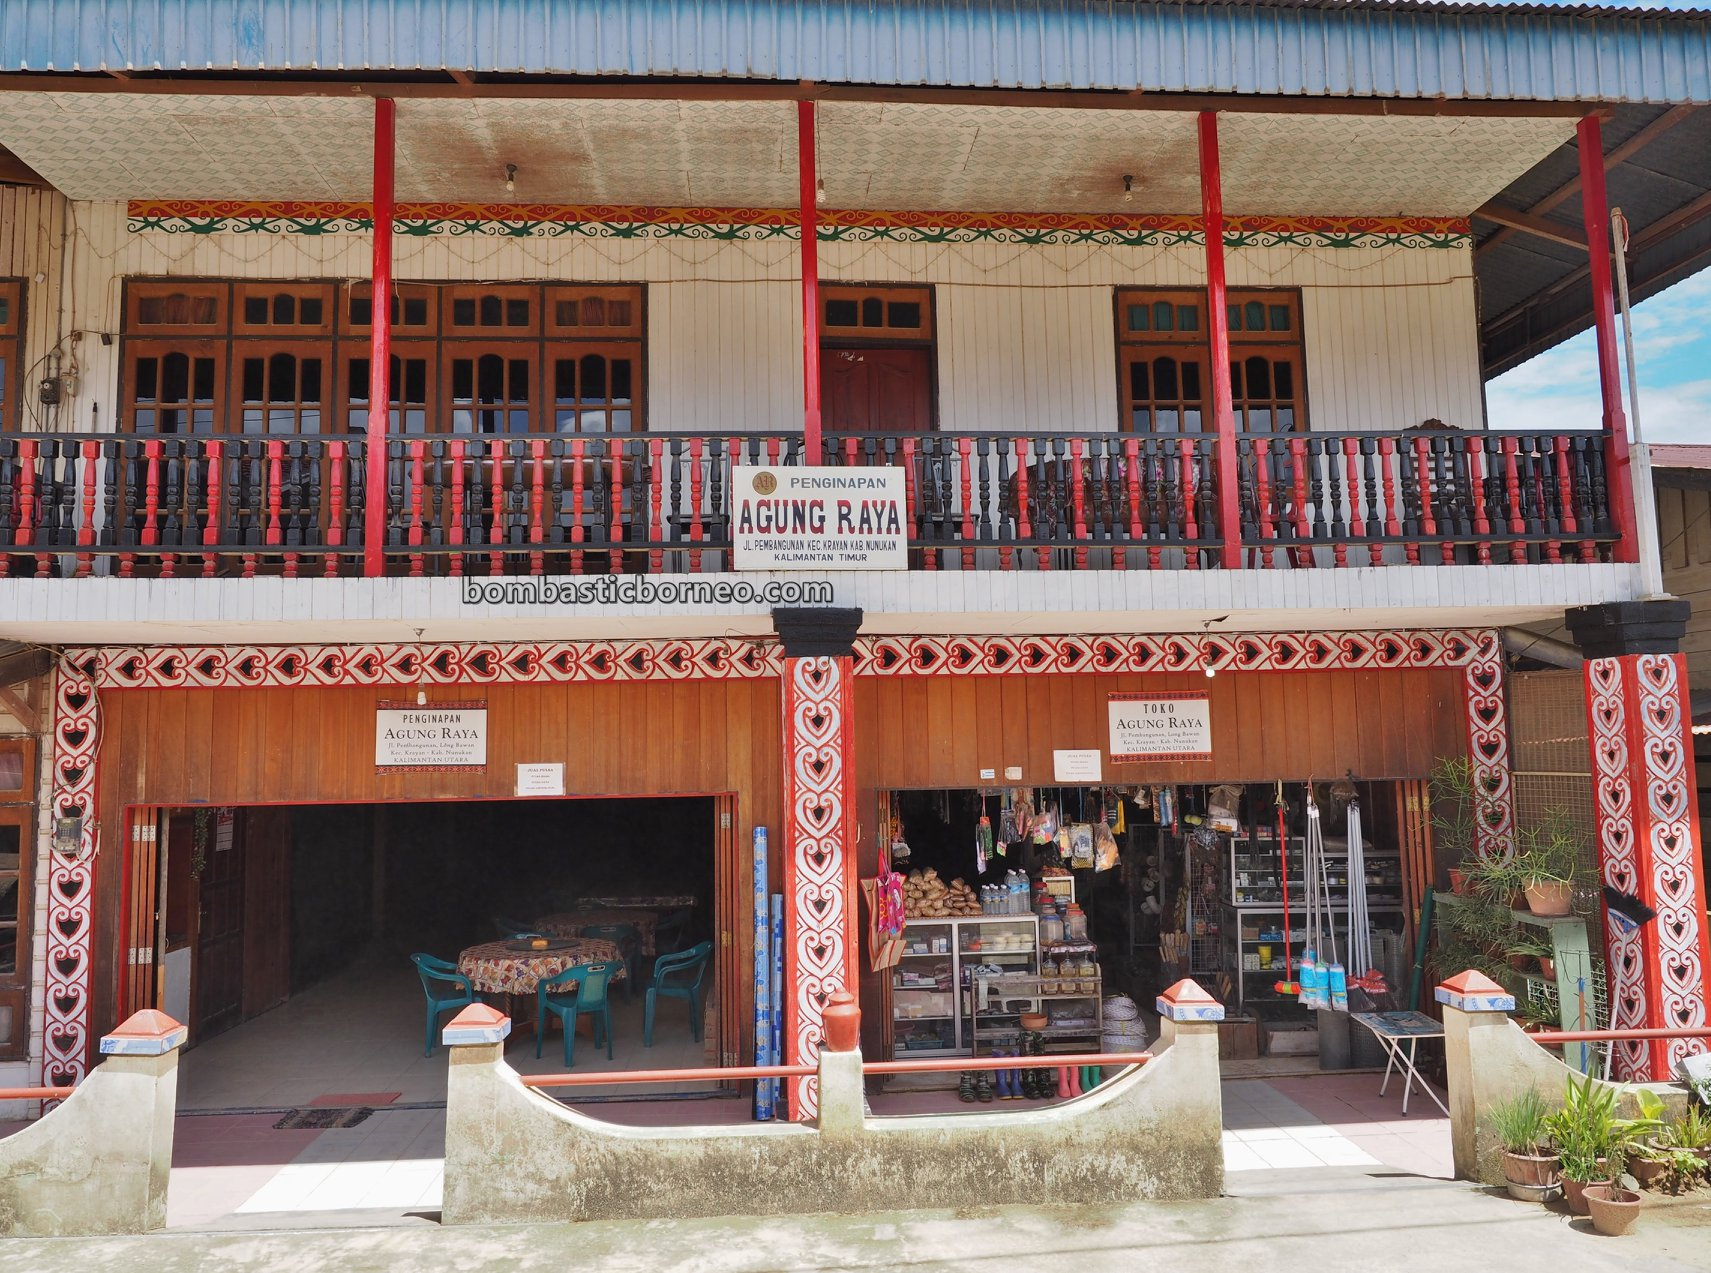 Border town, hotel, Nunukan, backpackers, exploration, Interior, Village, Highlands, native, Tourism, travel guide, Borneo, 穿越婆罗洲游踪, 印尼北加里曼丹, 原住民高原,